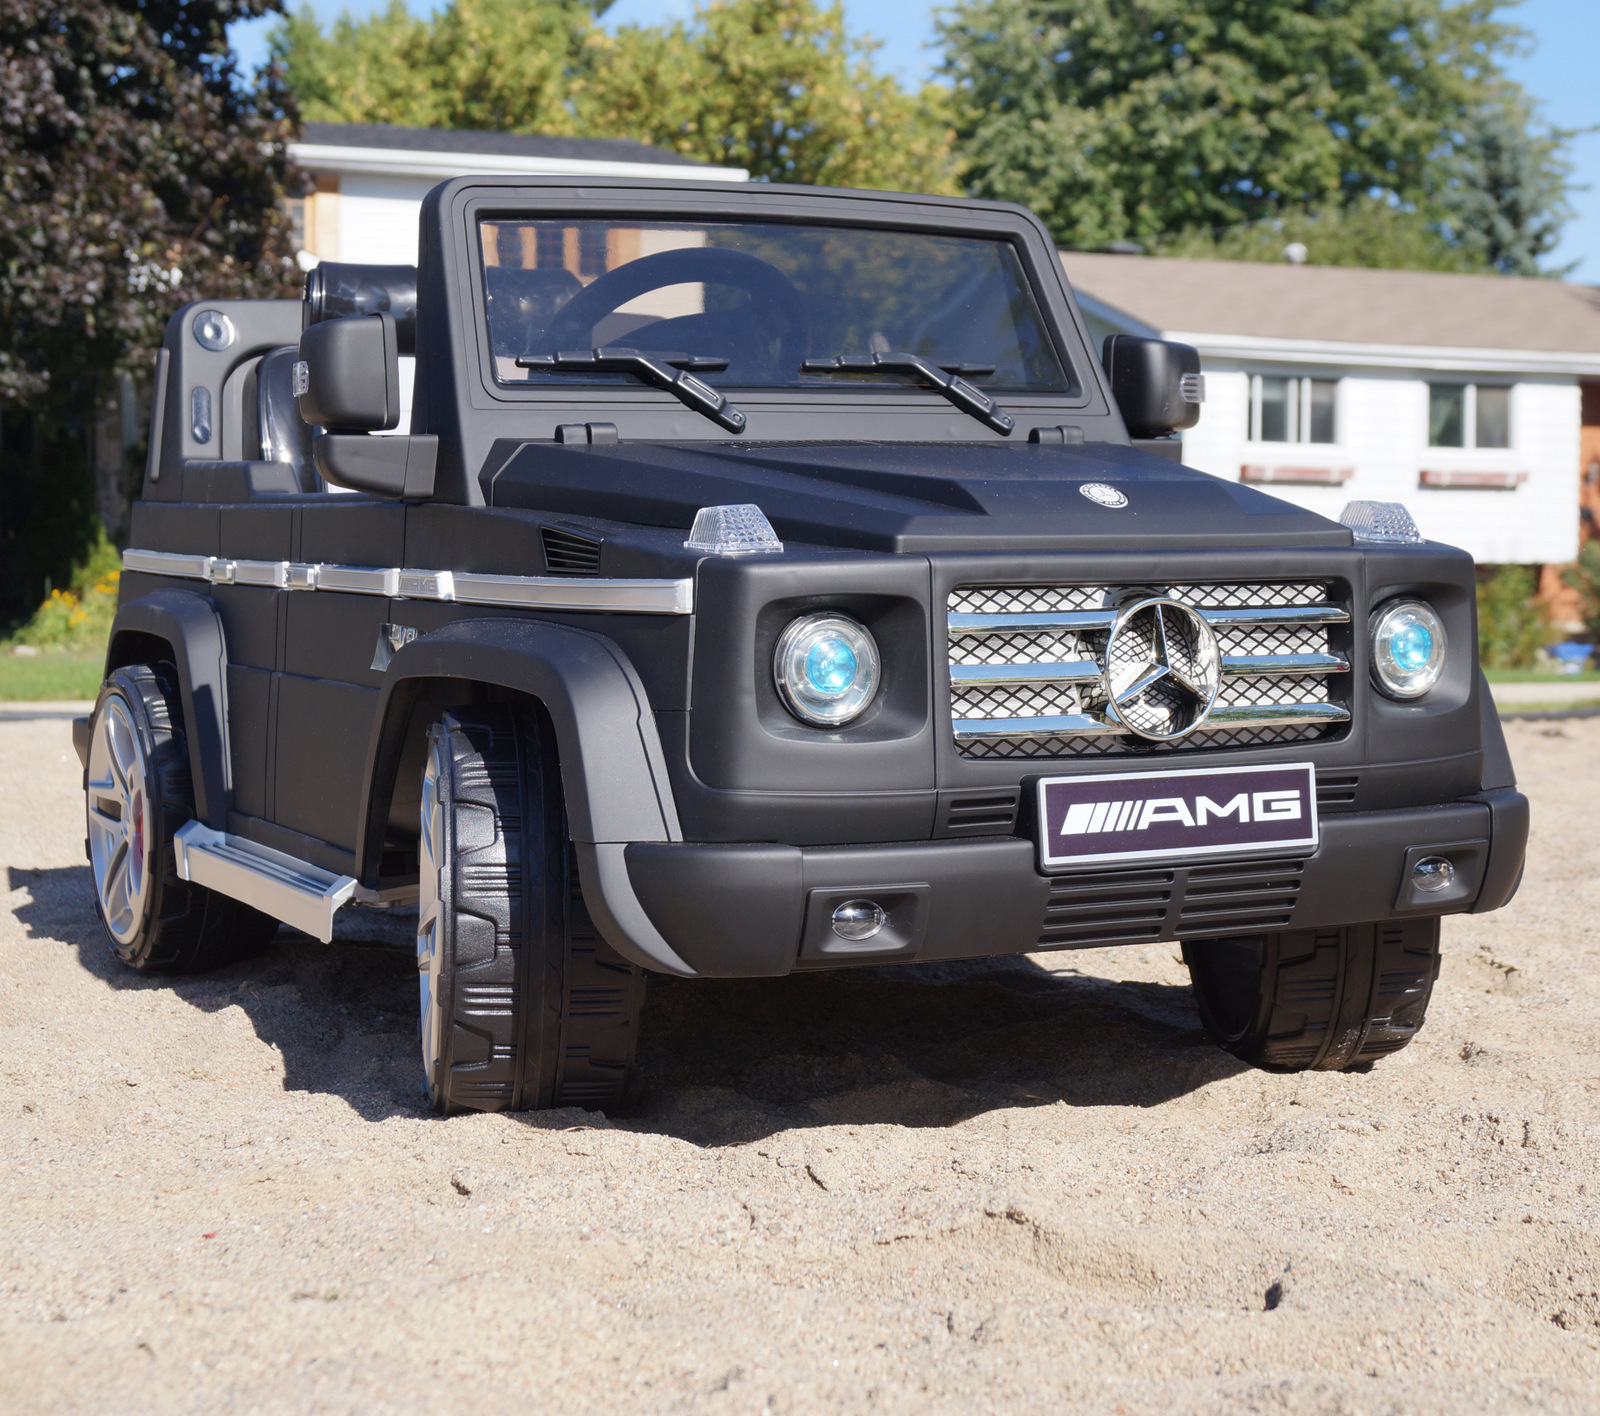 Mercedes benz g55 amg 2 seat kids ride on battery powered for Mercedes benz 2 seater